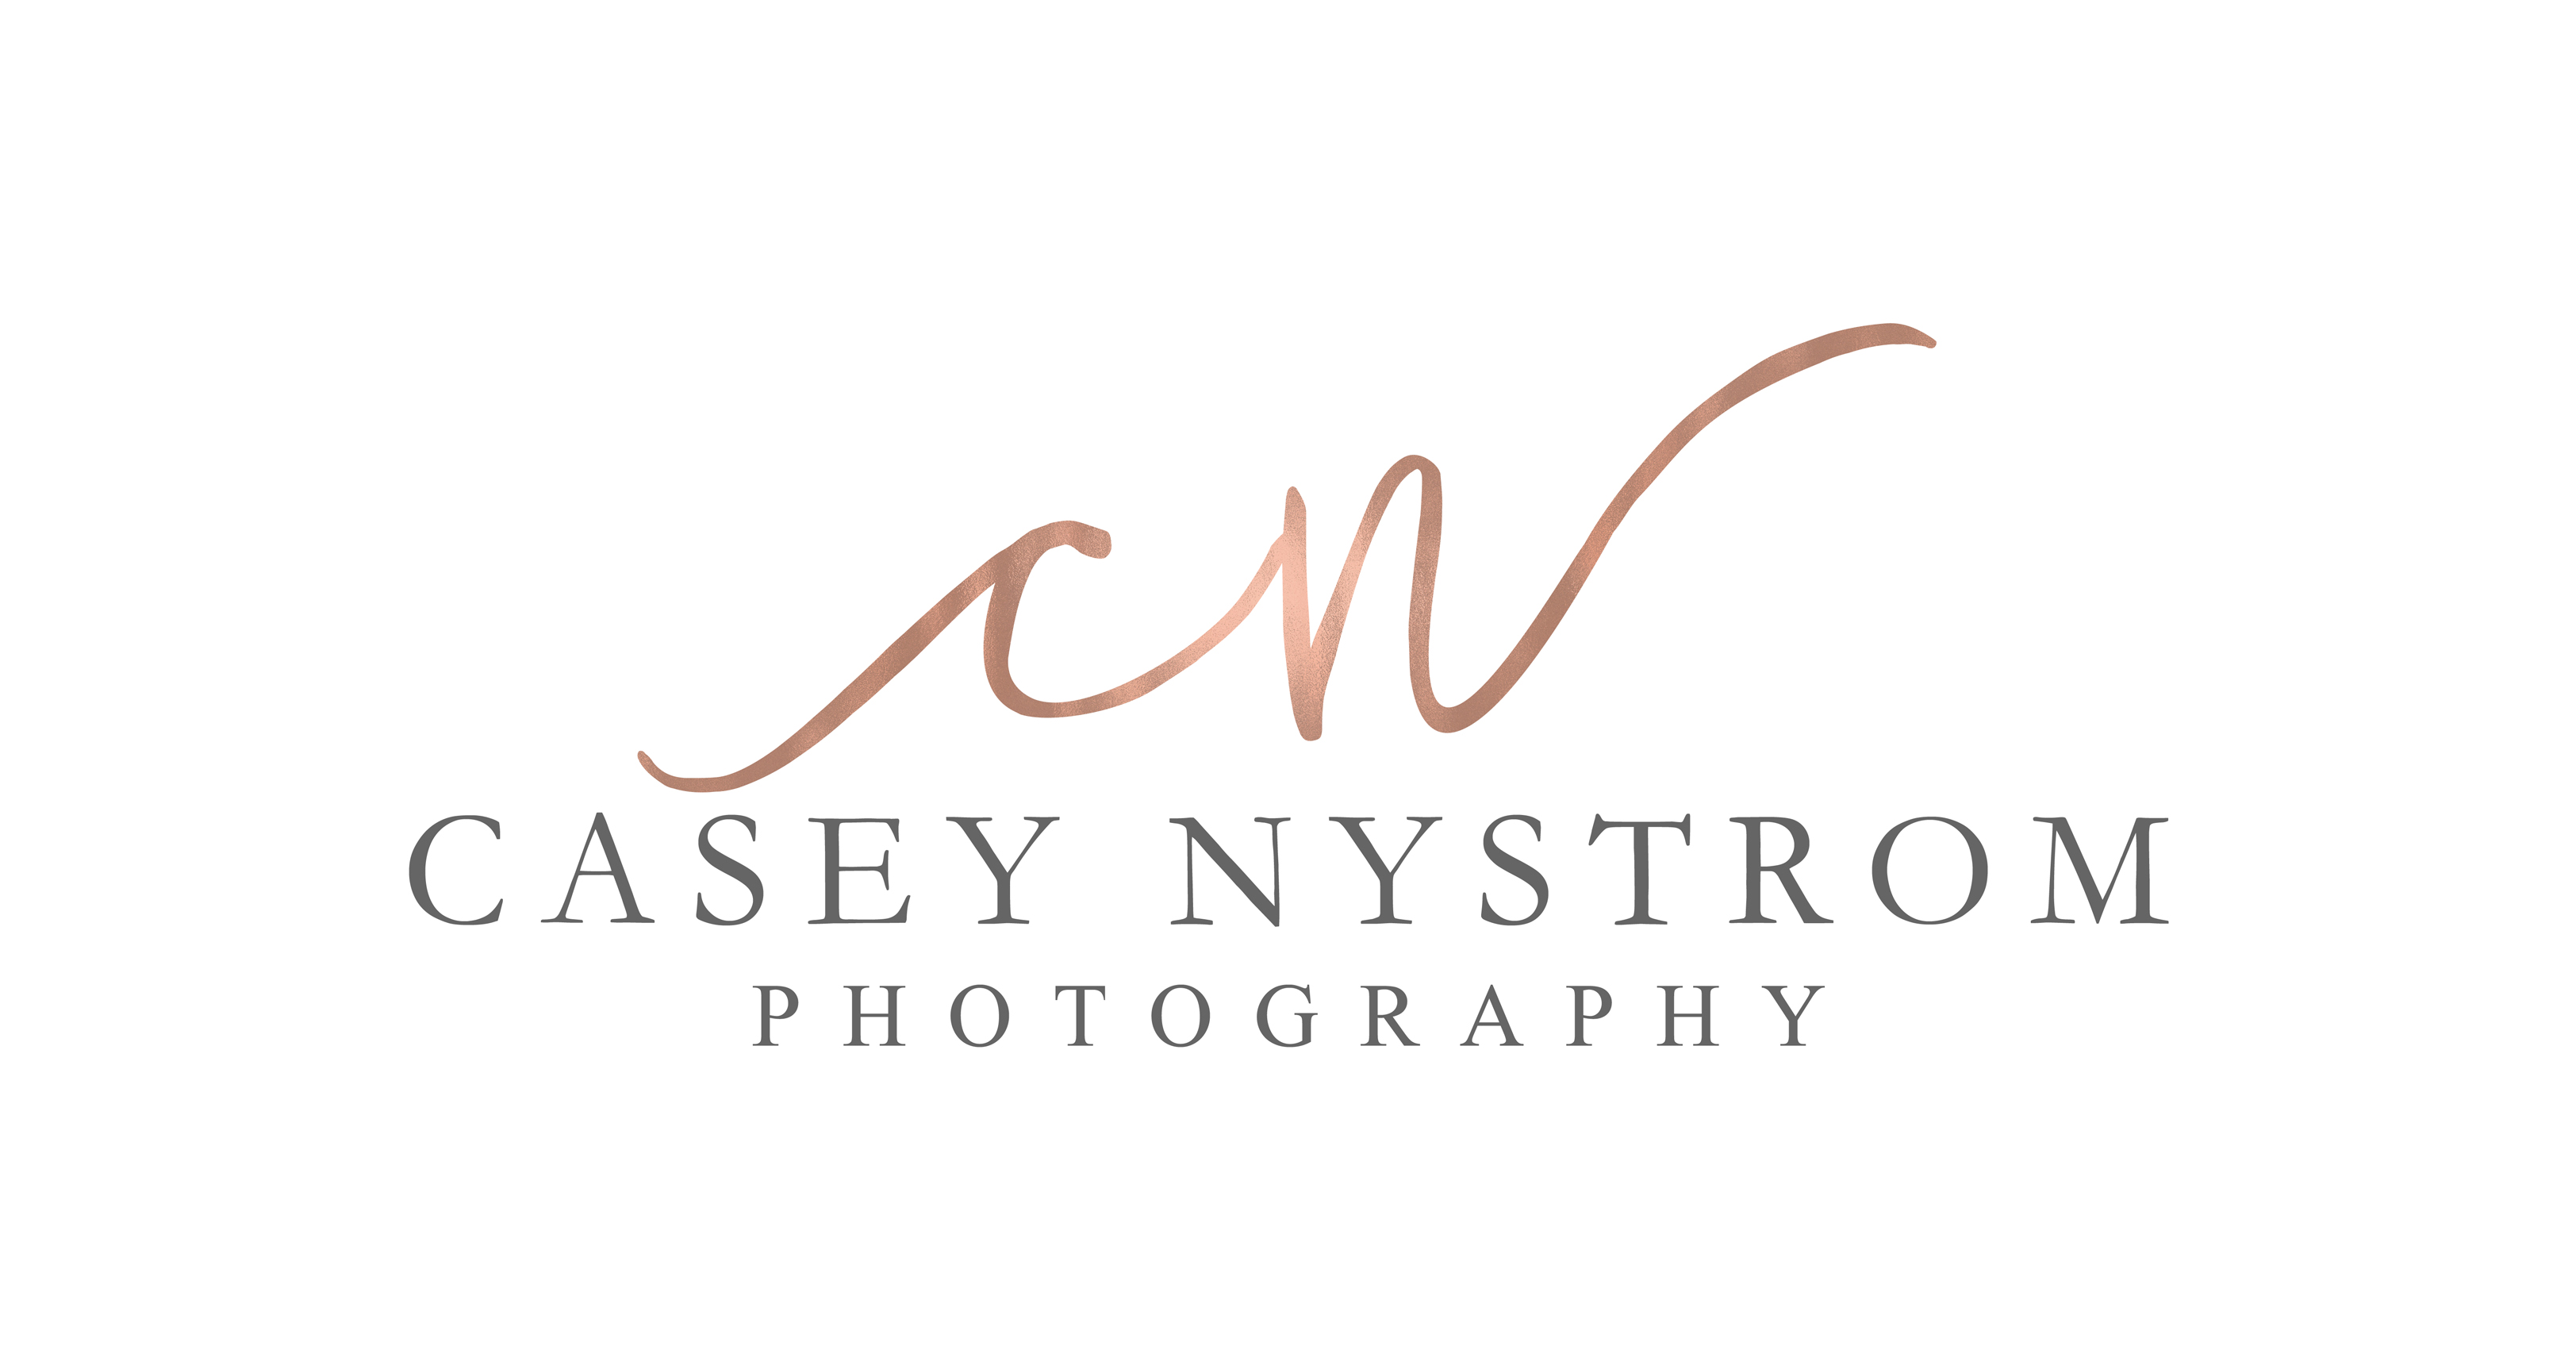 Casey Nystrom Photography